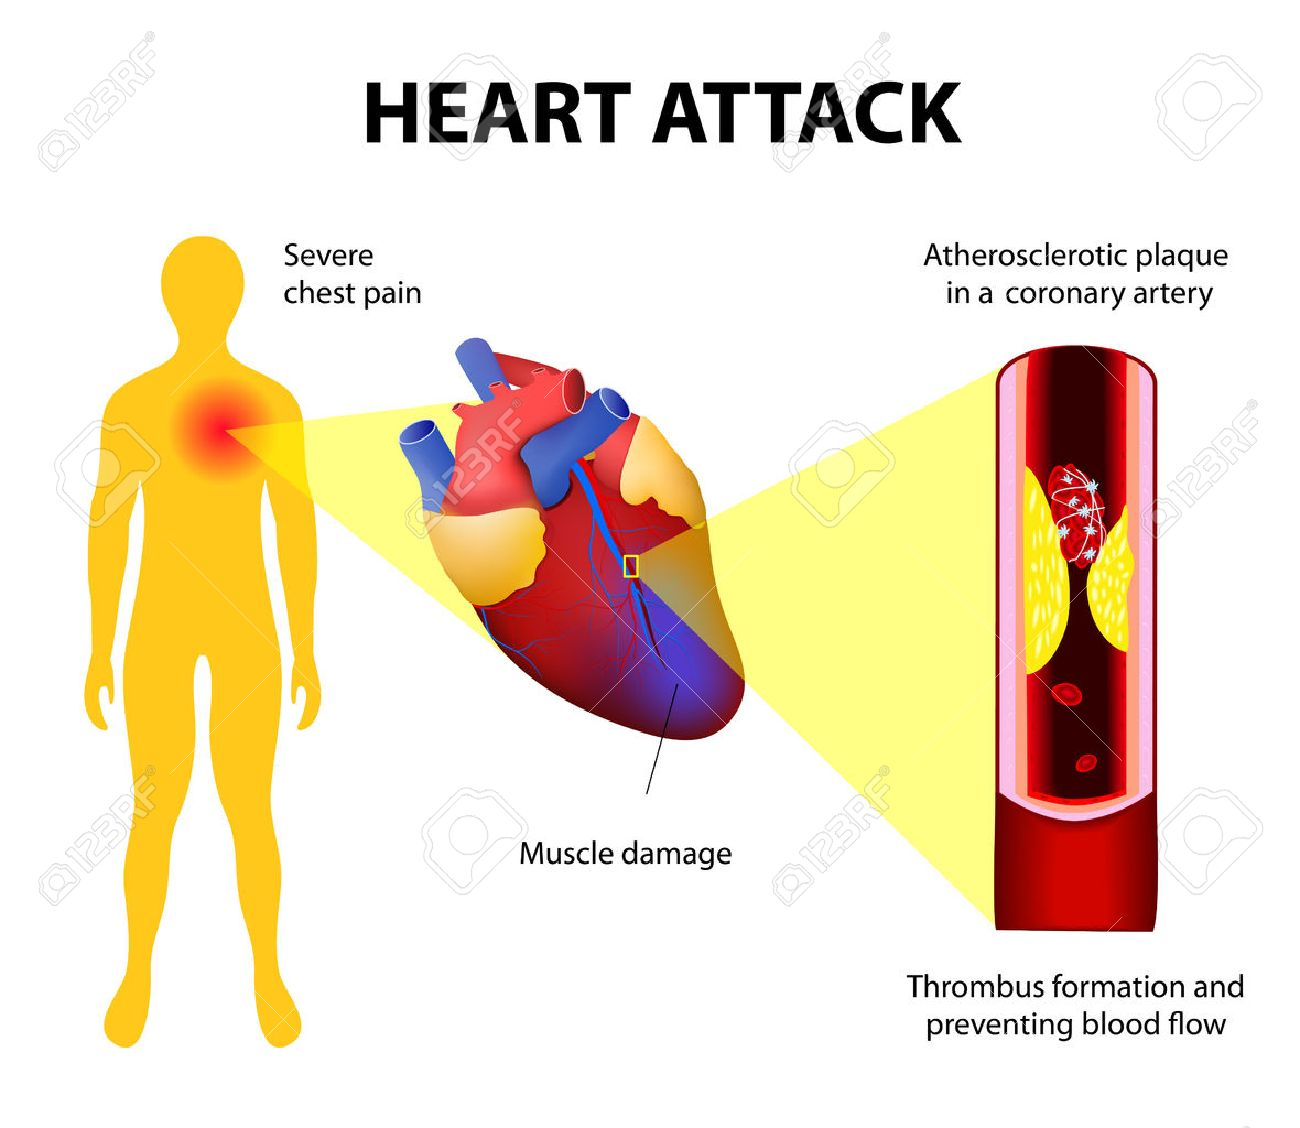 anatomy of a heart attack diagram of a myocardial infarction  : heart attack diagram - findchart.co